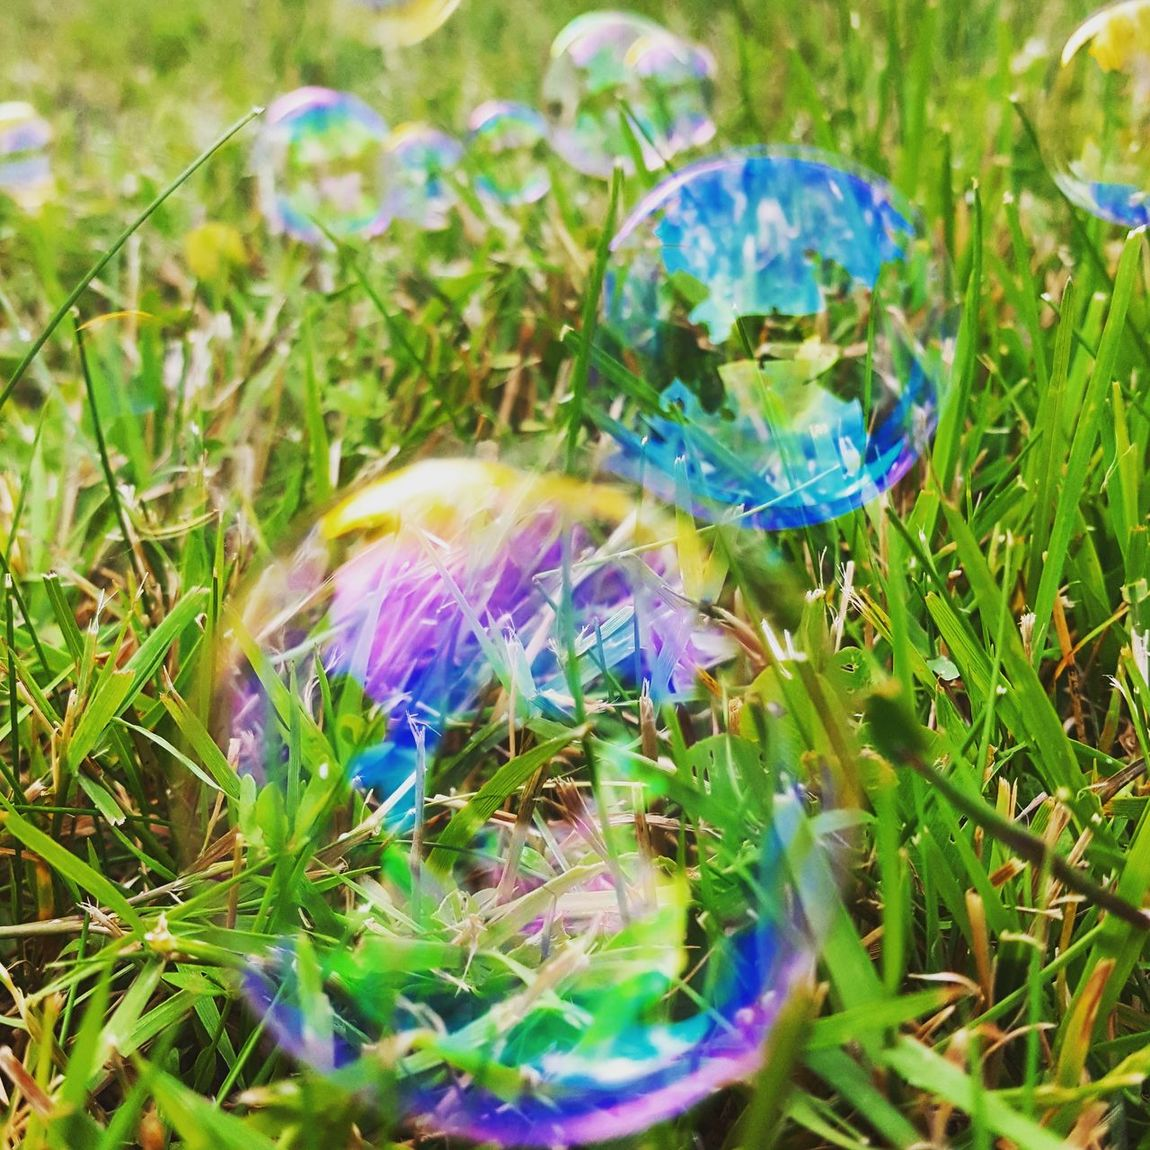 BubbleBubble Onthagrass Reflect Colorful The OO Mission Best EyeEm Shot Perfect Moment